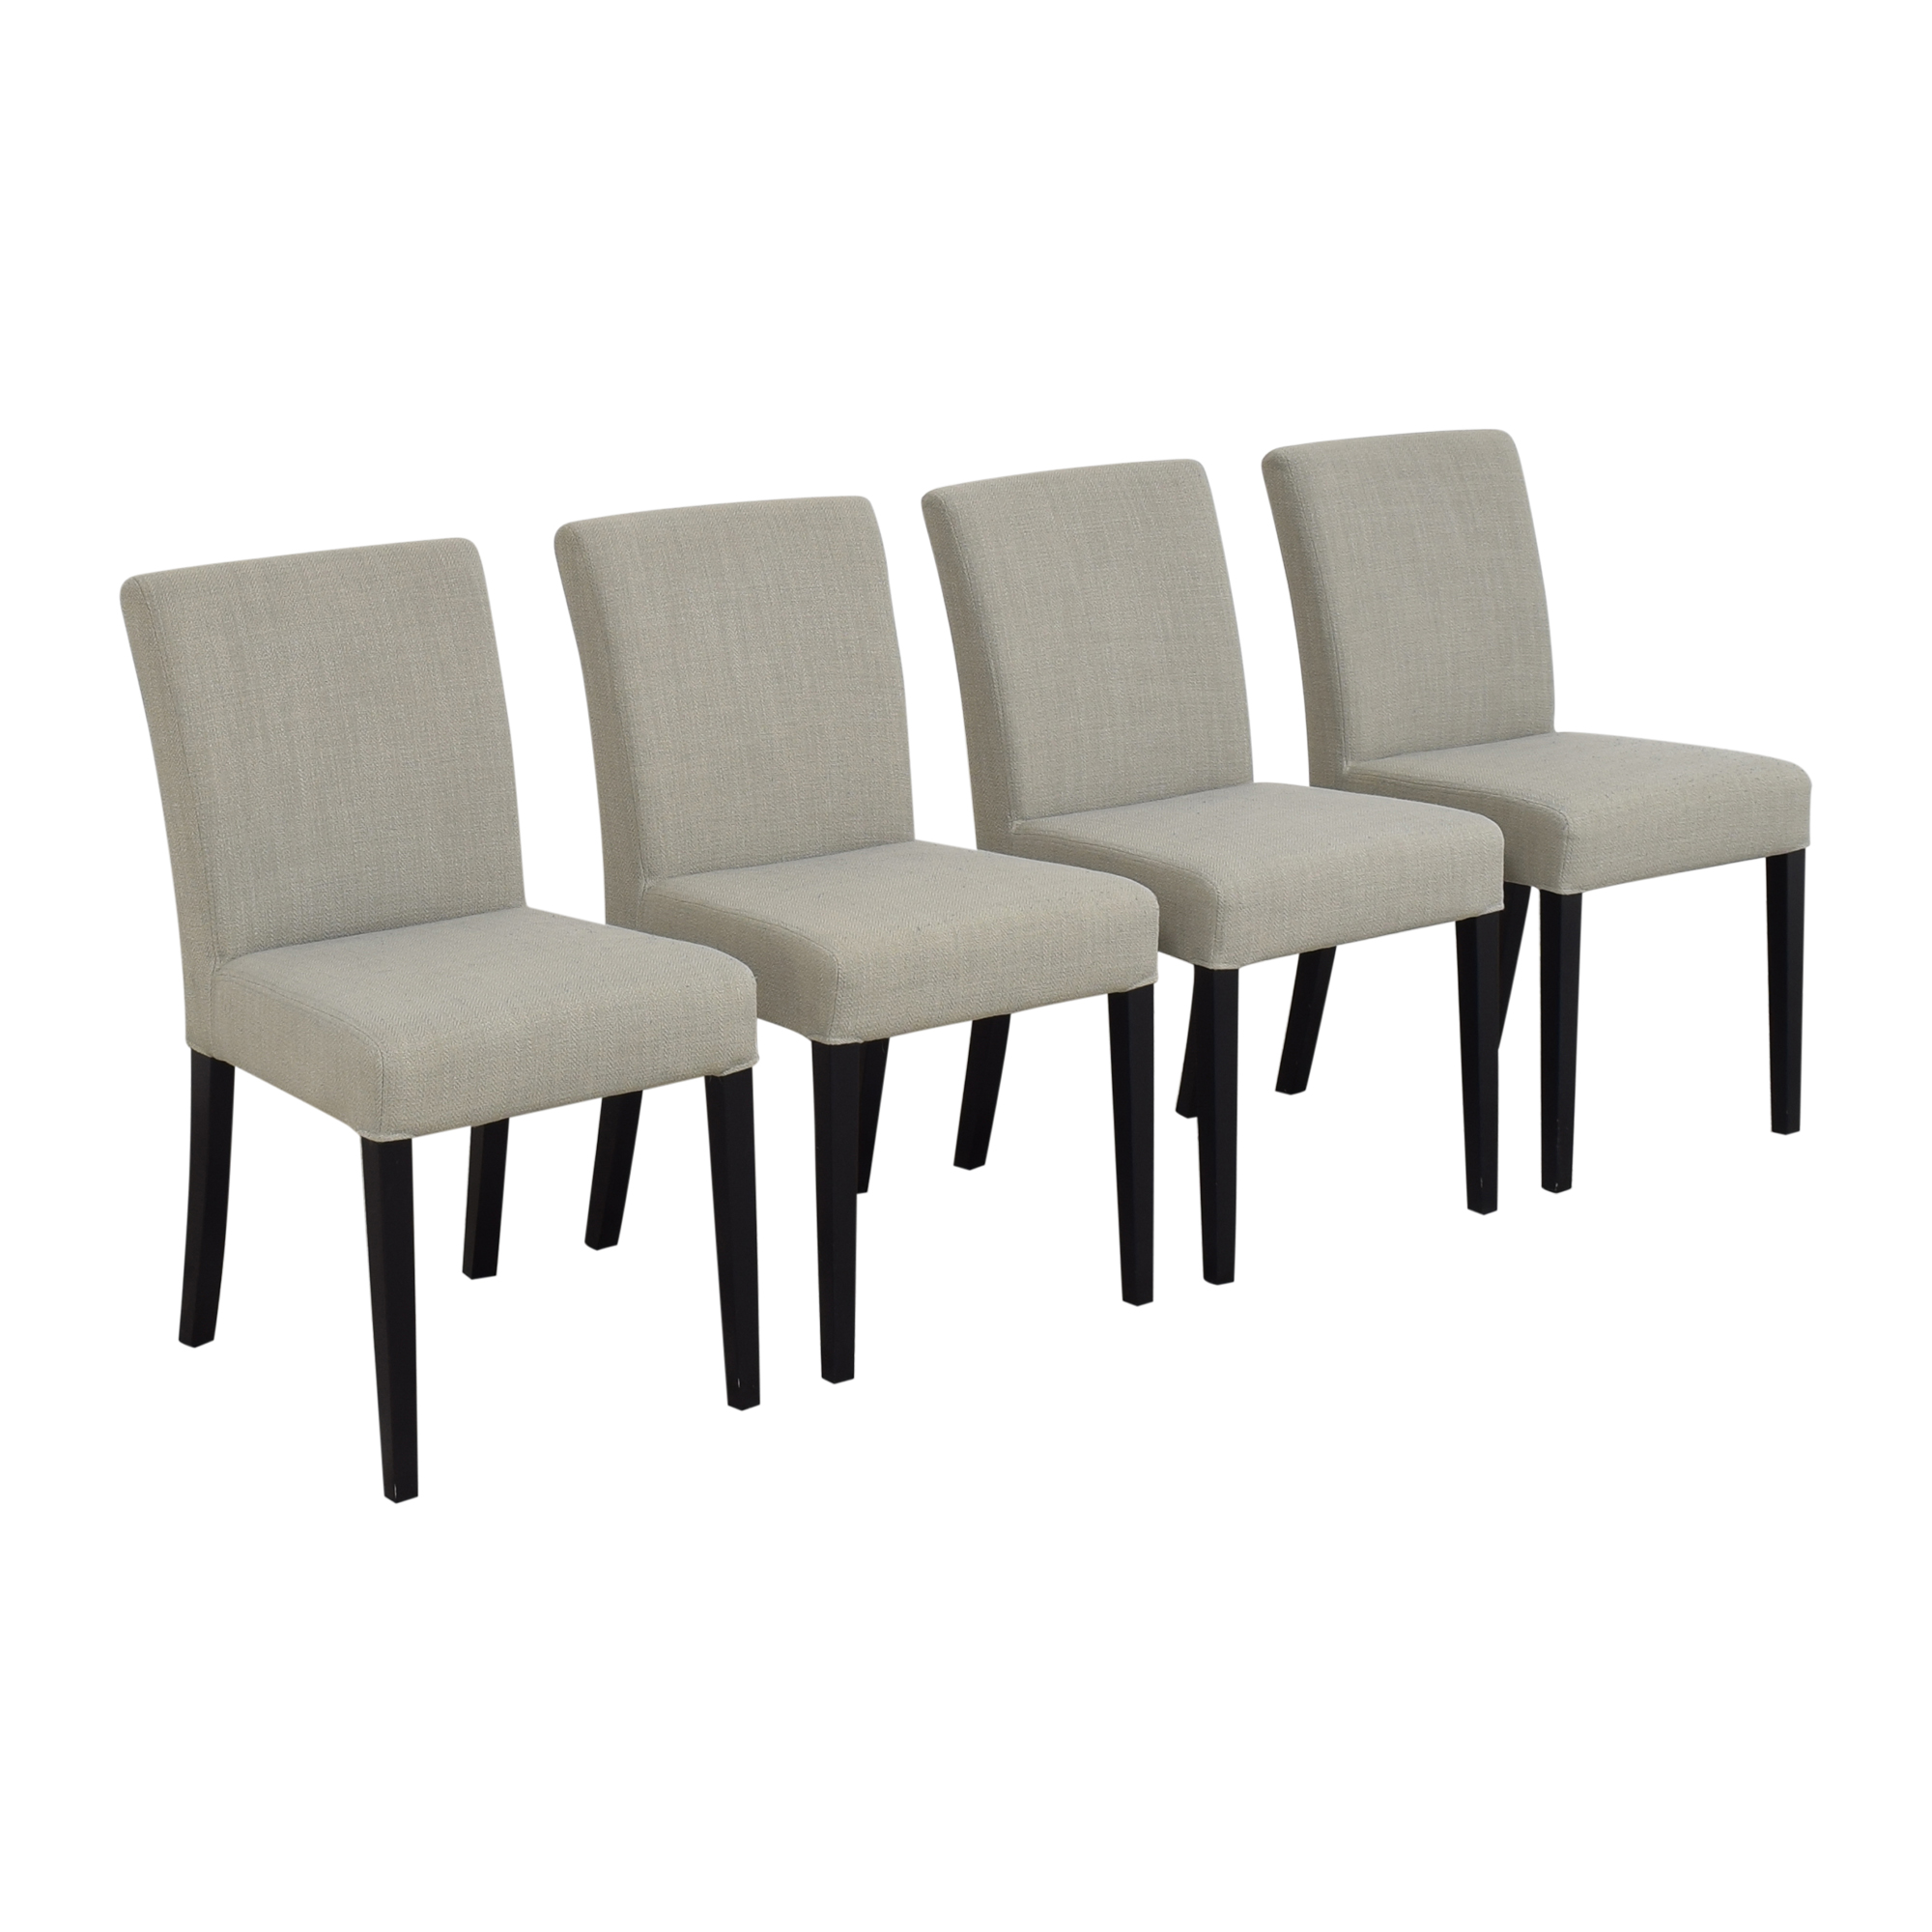 Crate & Barrel Crate & Barrel Miles Upholstered Dining Chairs for sale